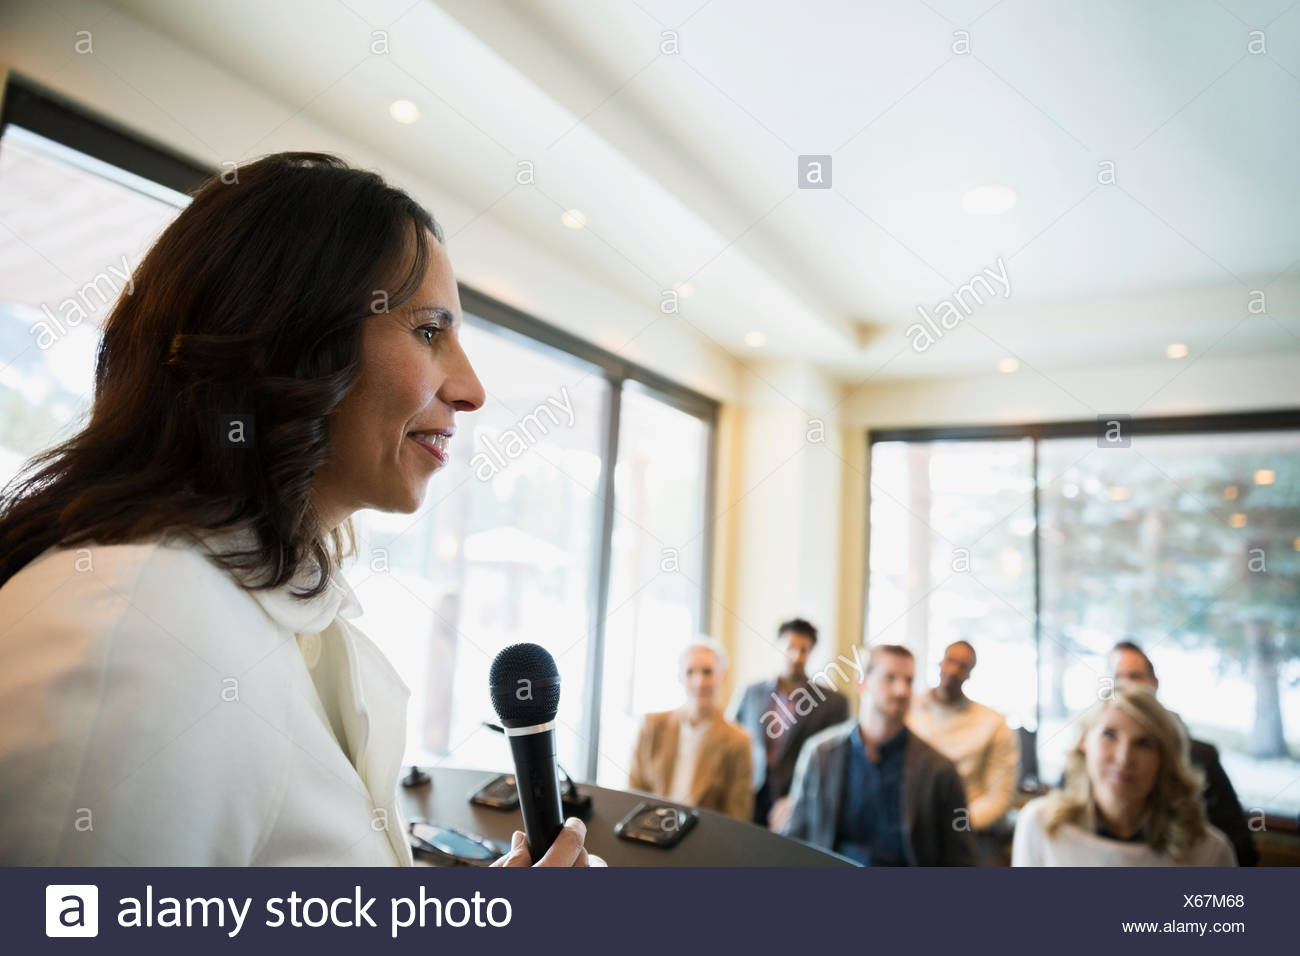 Businesswoman with microphone leading conference - Stock Image